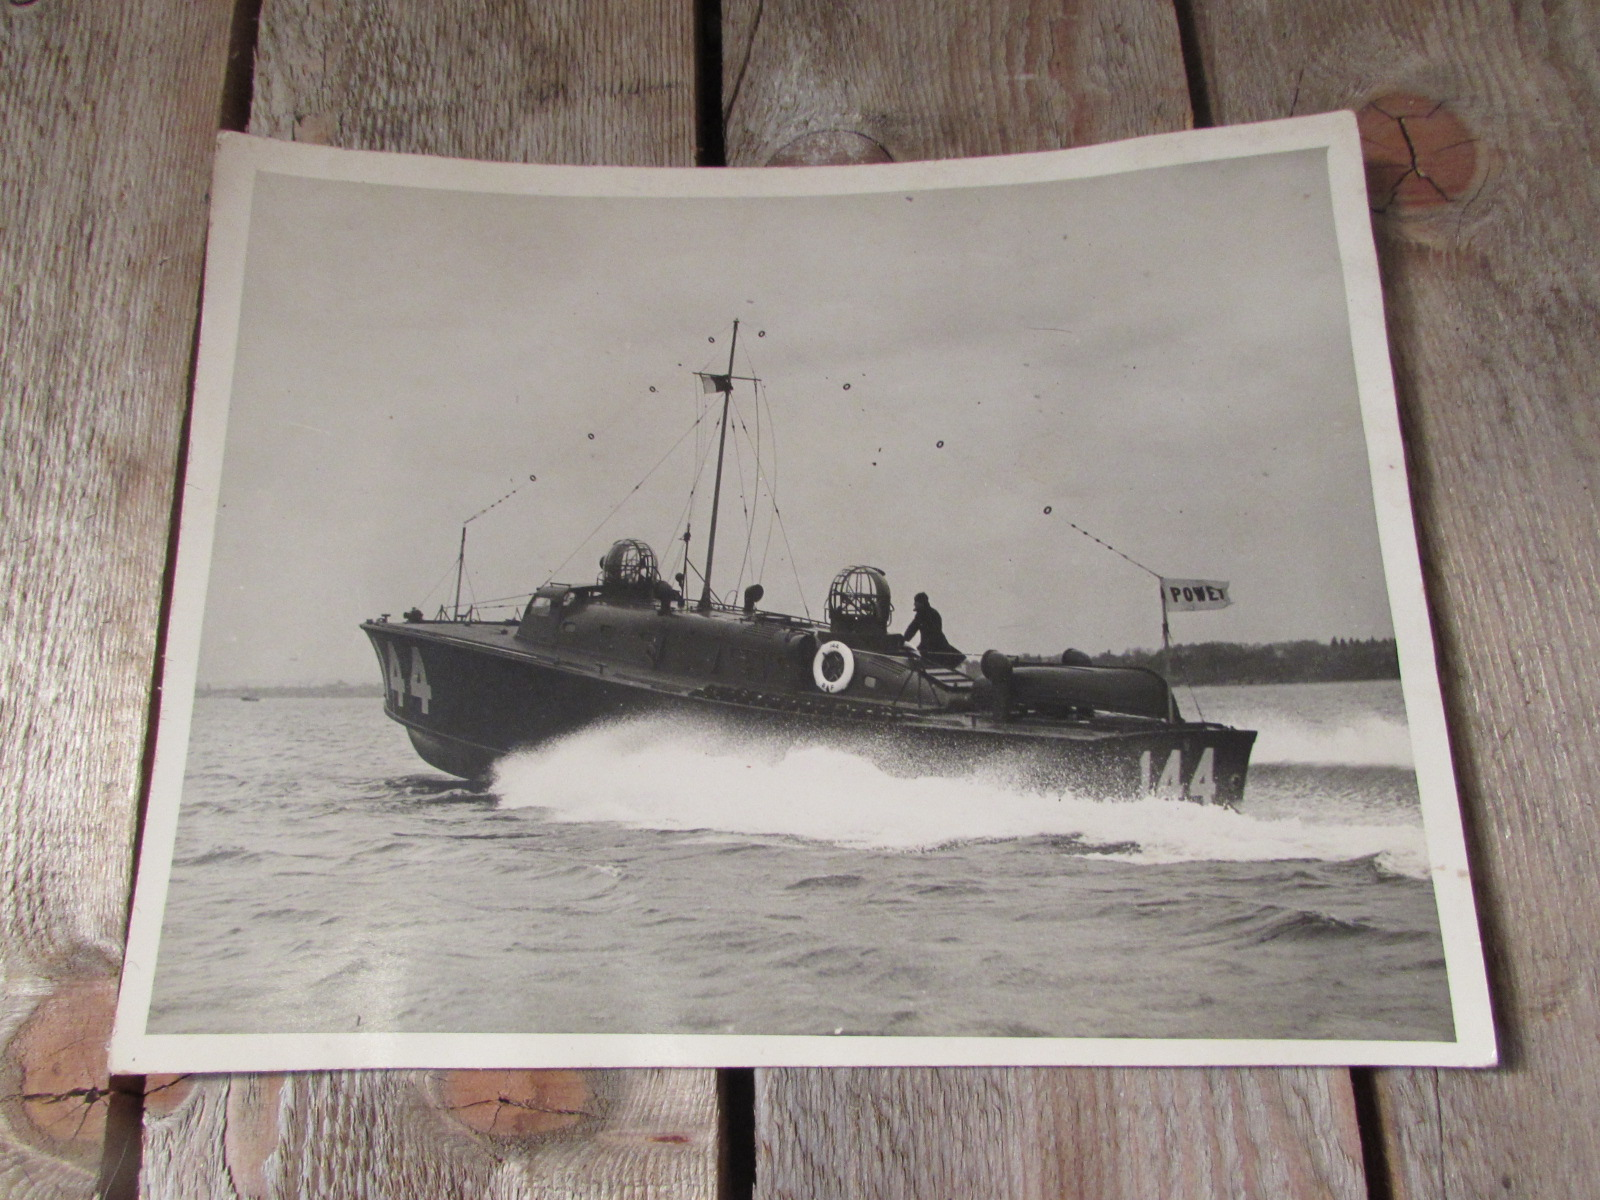 1944 photo of the R.A.F. launch 144